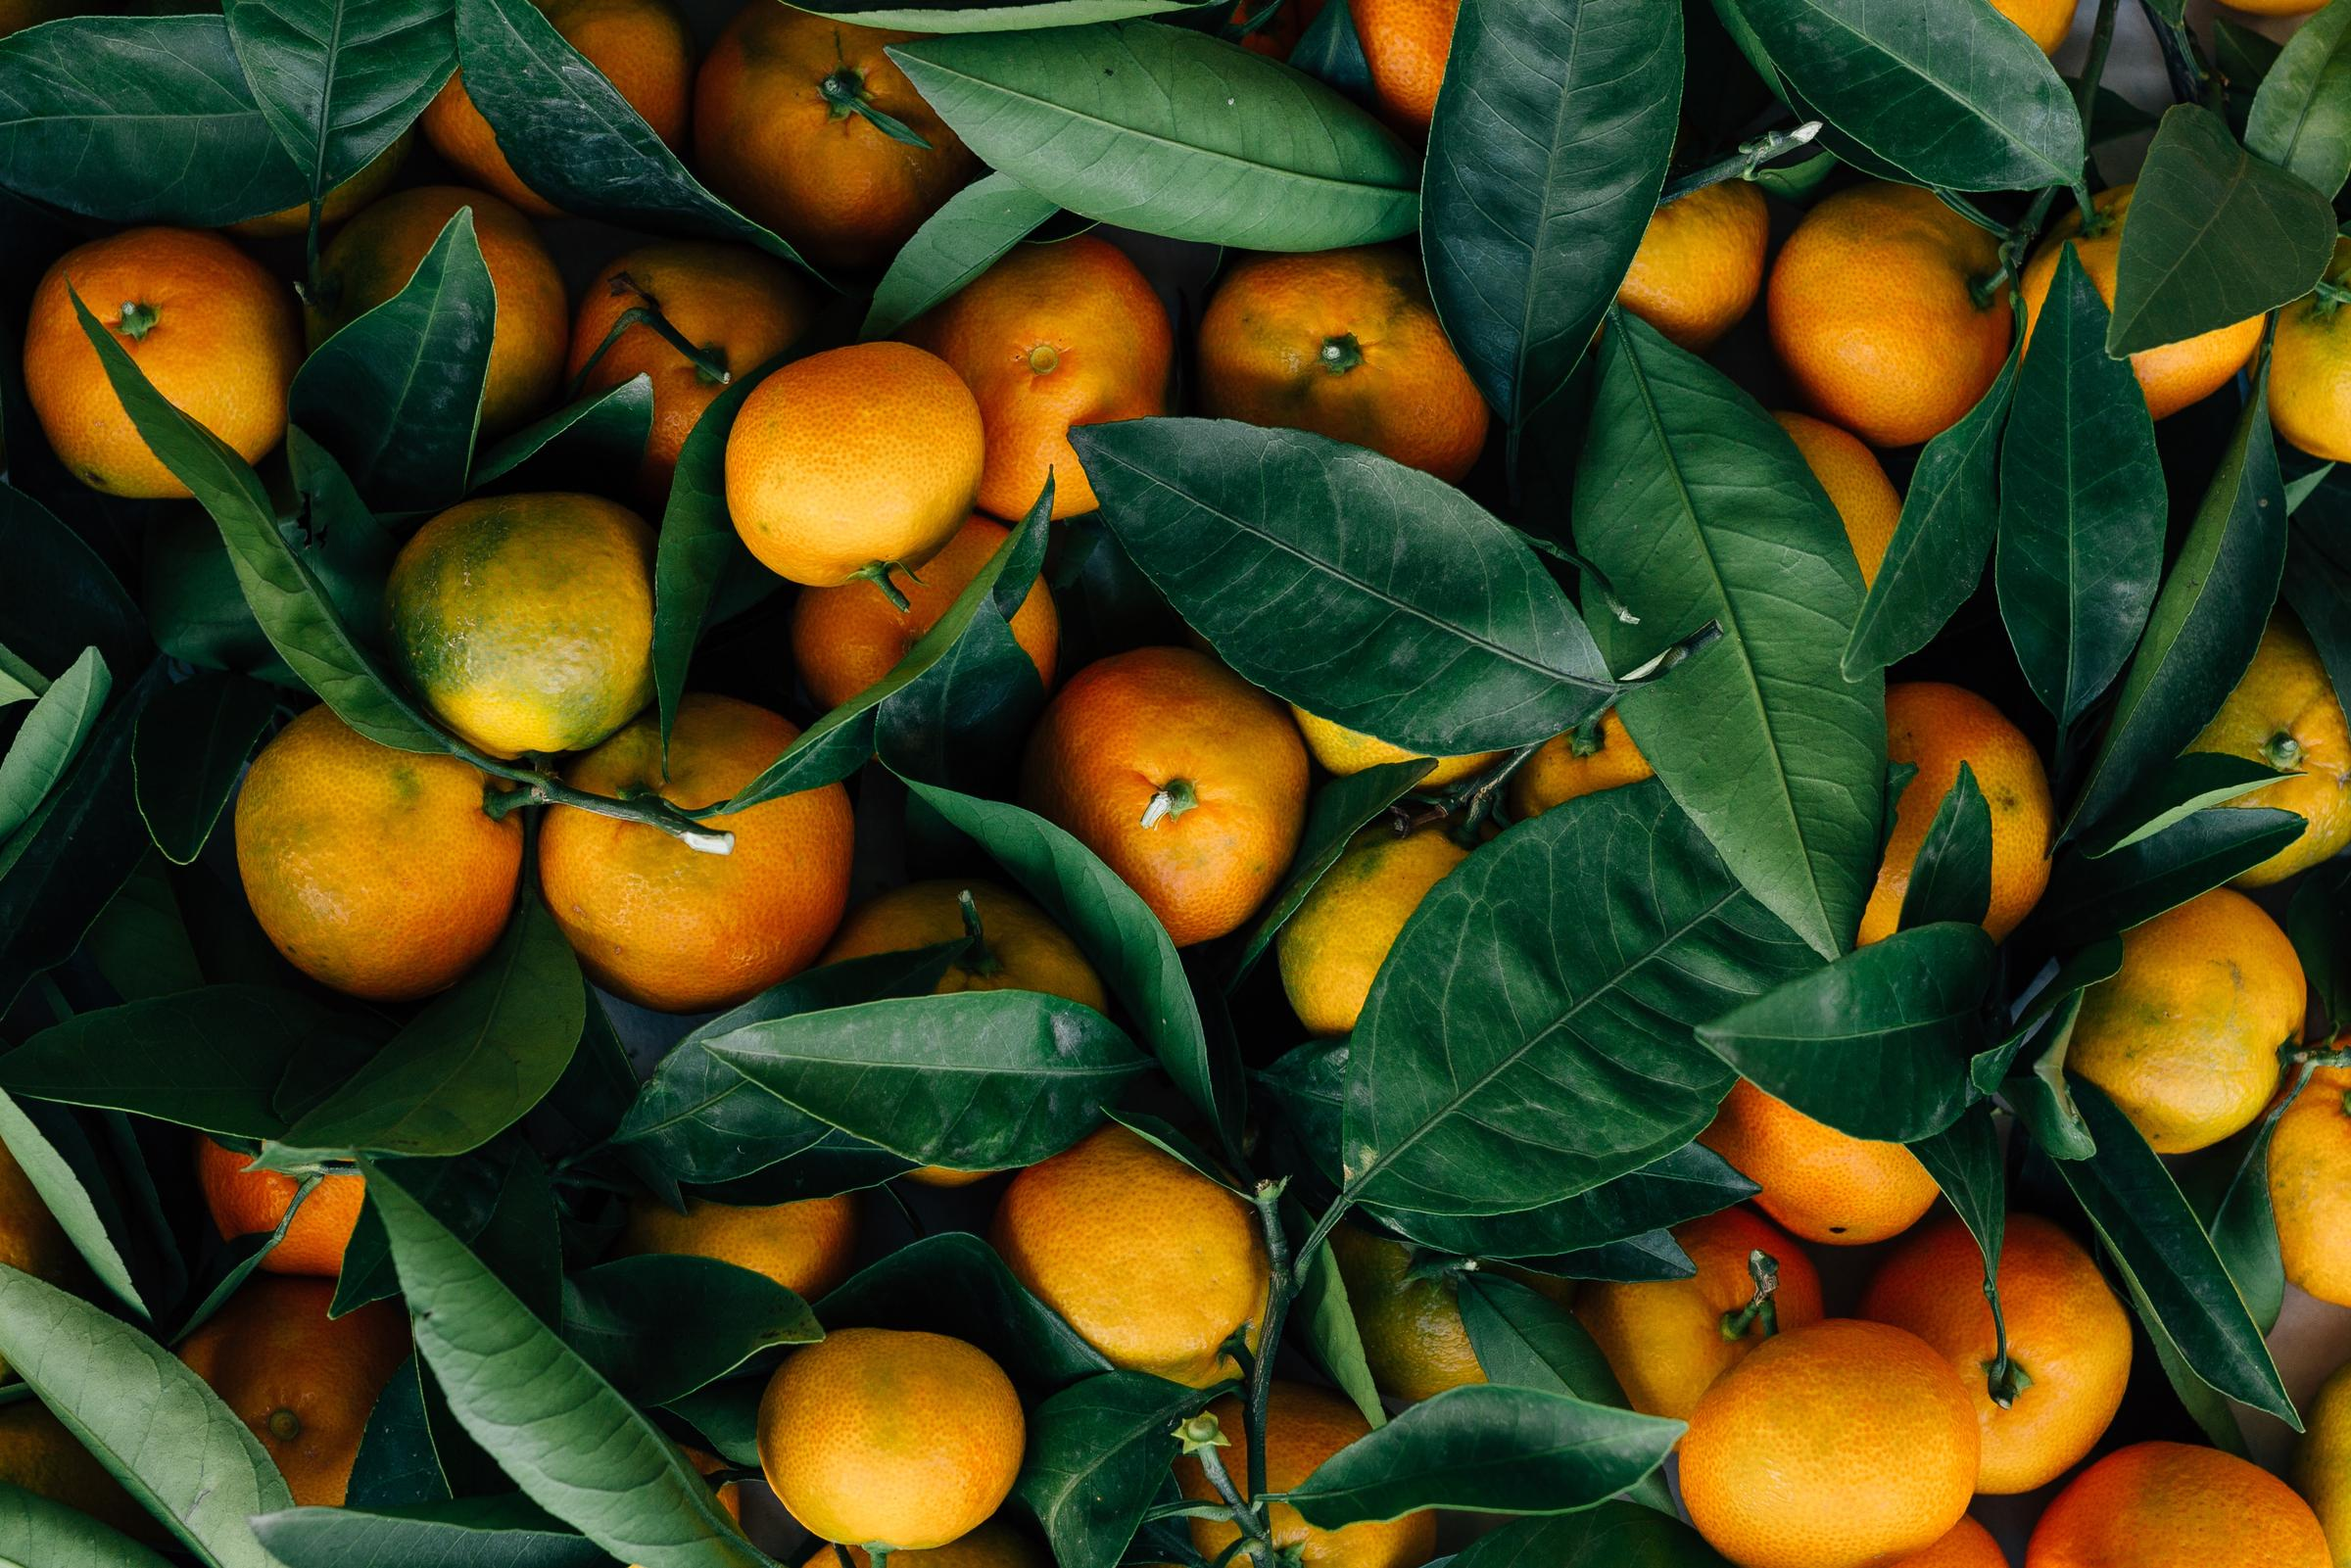 USDA reduces expectations for Florida's citrus crop harvests